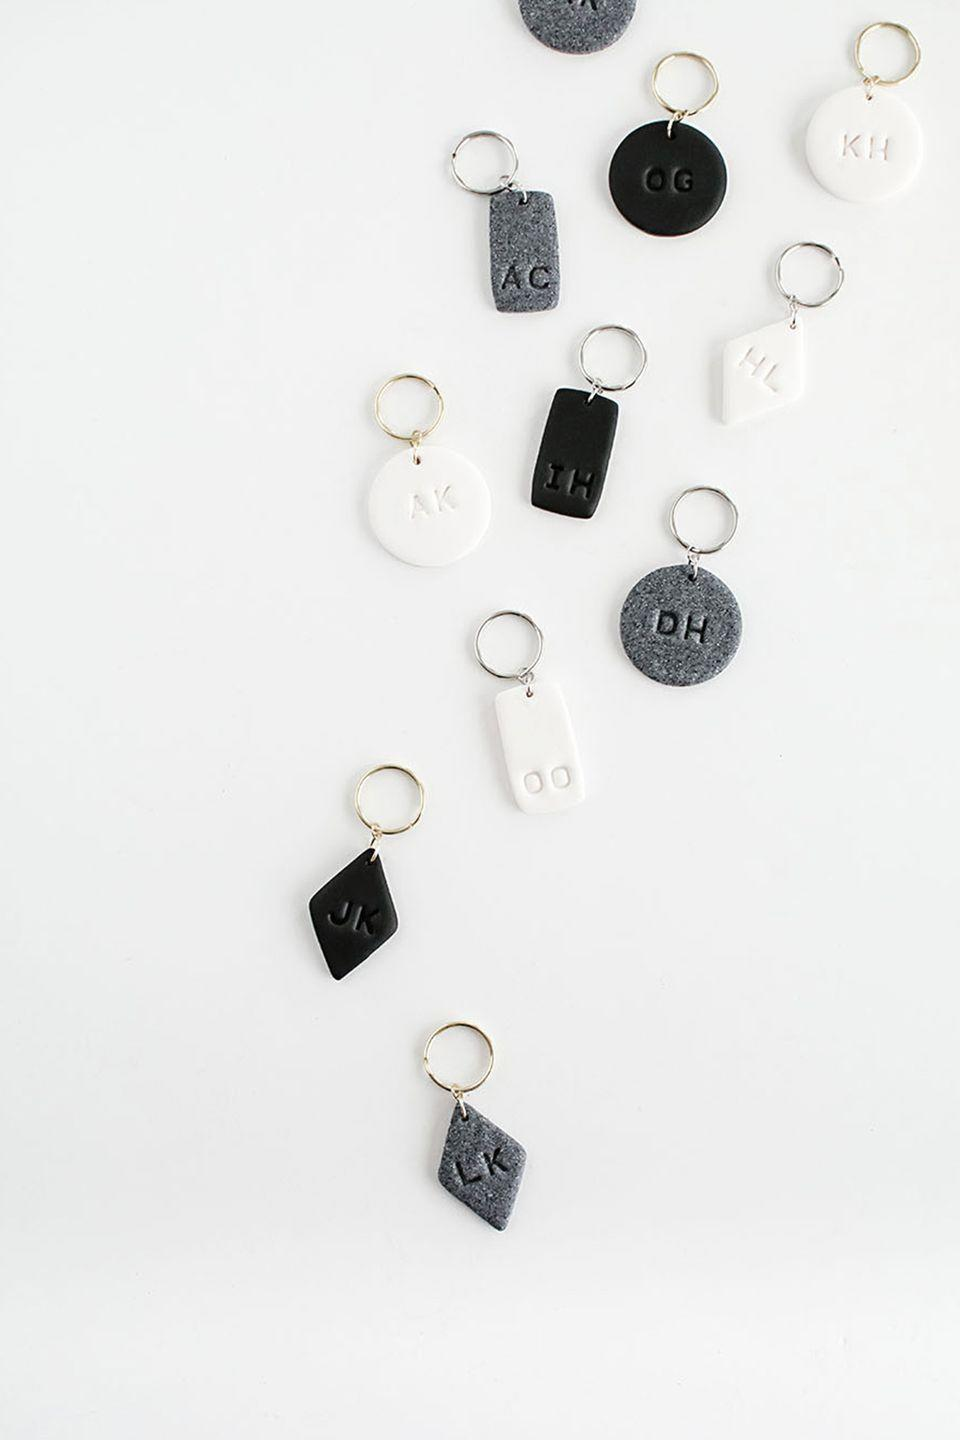 """<p>These stylish, modern keychains add a touch of cool to mom's car keys and can be customized with her initials or the initials of all her kids.<br></p><p><a class=""""link rapid-noclick-resp"""" href=""""https://www.amazon.com/SUPLA-Lobster-jewlery-Making-findings/dp/B01NA7YLZQ/ref=sr_1_3?keywords=jump+rings&qid=1553012567&s=gateway&sr=8-3&tag=syn-yahoo-20&ascsubtag=%5Bartid%7C10055.g.2412%5Bsrc%7Cyahoo-us"""" rel=""""nofollow noopener"""" target=""""_blank"""" data-ylk=""""slk:SHOP JUMP RINGS"""">SHOP JUMP RINGS</a></p><p><em><a href=""""http://www.homeyohmy.com/diy-monogram-clay-keychains/"""" rel=""""nofollow noopener"""" target=""""_blank"""" data-ylk=""""slk:Get the tutorial at Homey Oh My »"""" class=""""link rapid-noclick-resp"""">Get the tutorial at Homey Oh My »</a></em> </p>"""